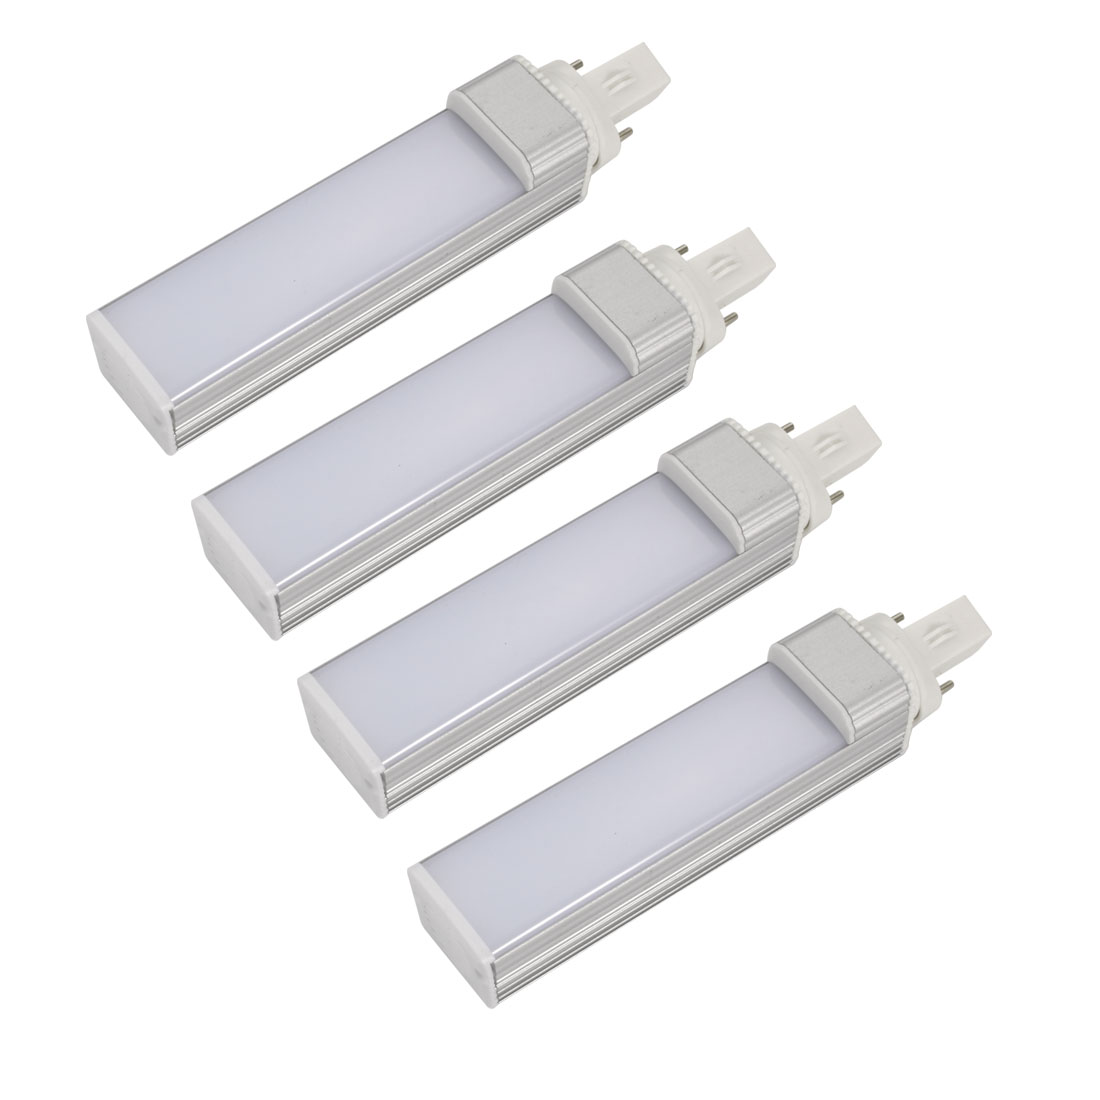 4pack DIY Parts for PLC Lamp G23 11W SMD5050 Lamp Housing Kit w White Cover